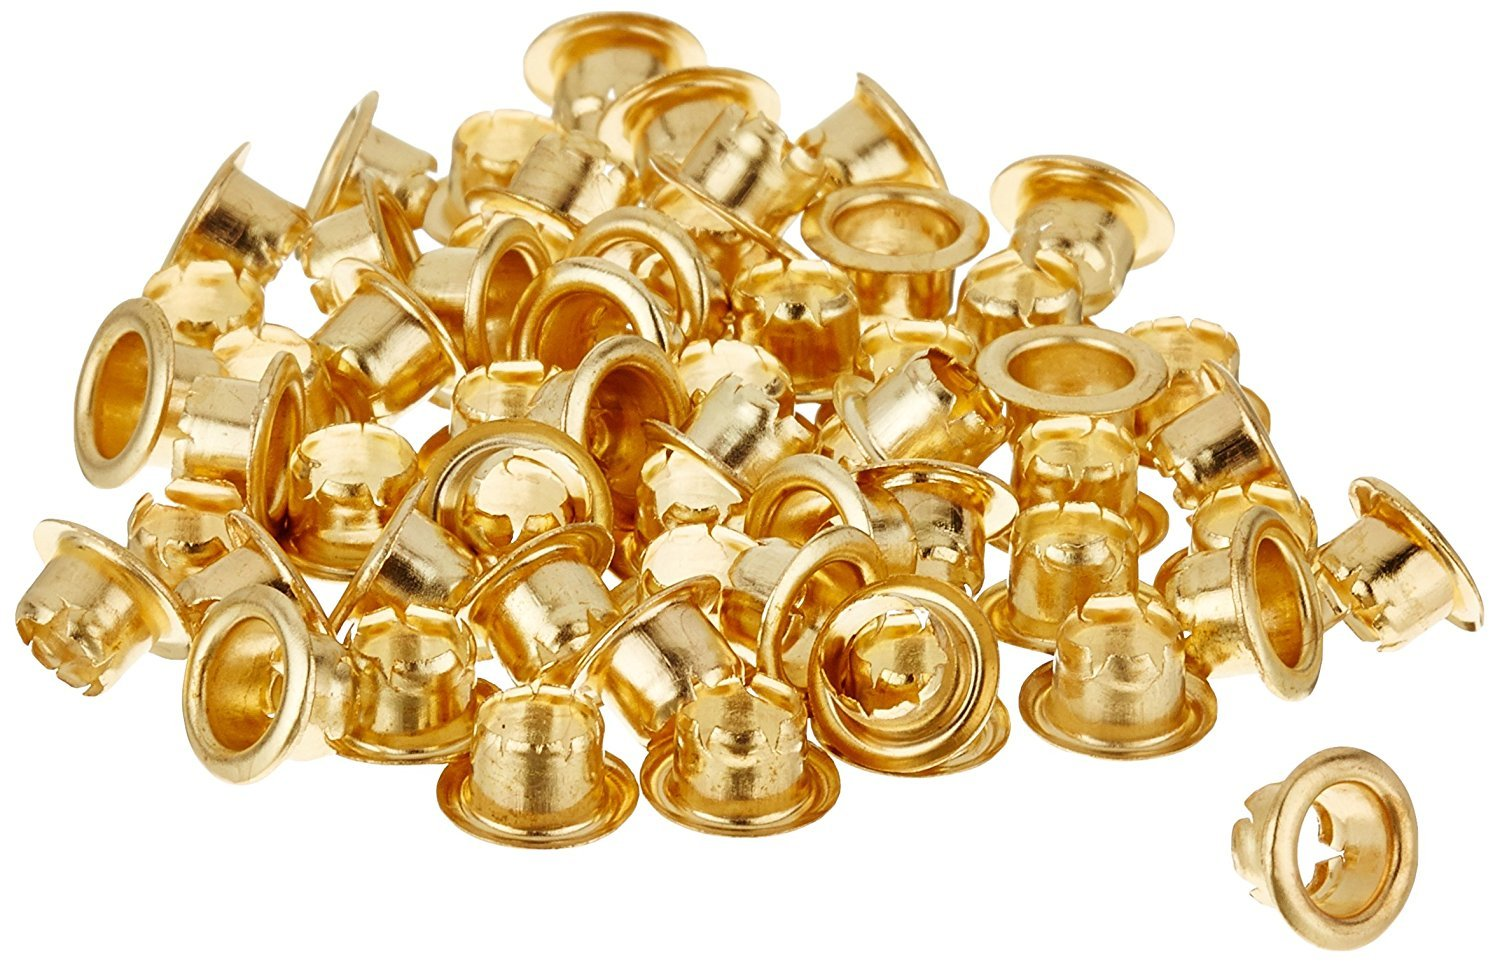 Natural Brass Finish Eyelets For Use With Rexel Eyeletter & Punch with a 4.7mm Diameter and 3.2mm Length (Sheet Capacity 15, Pack of 500) Acco 505183